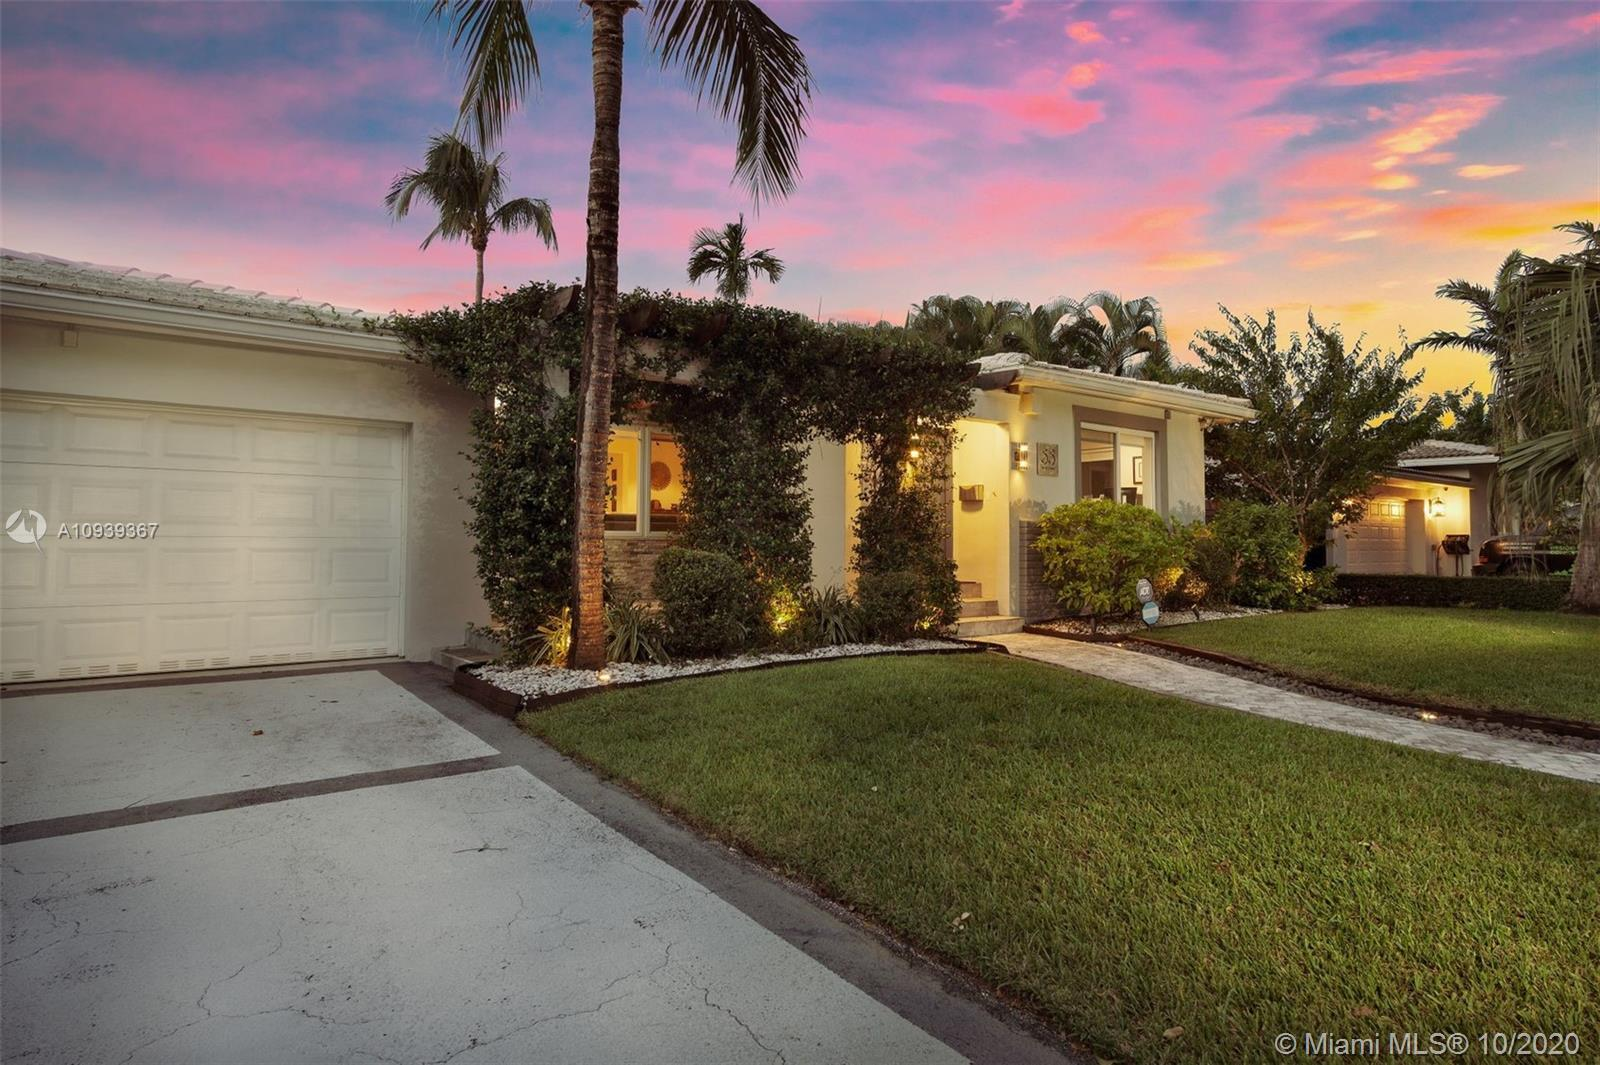 Beautifully updated Miami Shores home. Enjoy front to back sightlines from your entry foyer looking